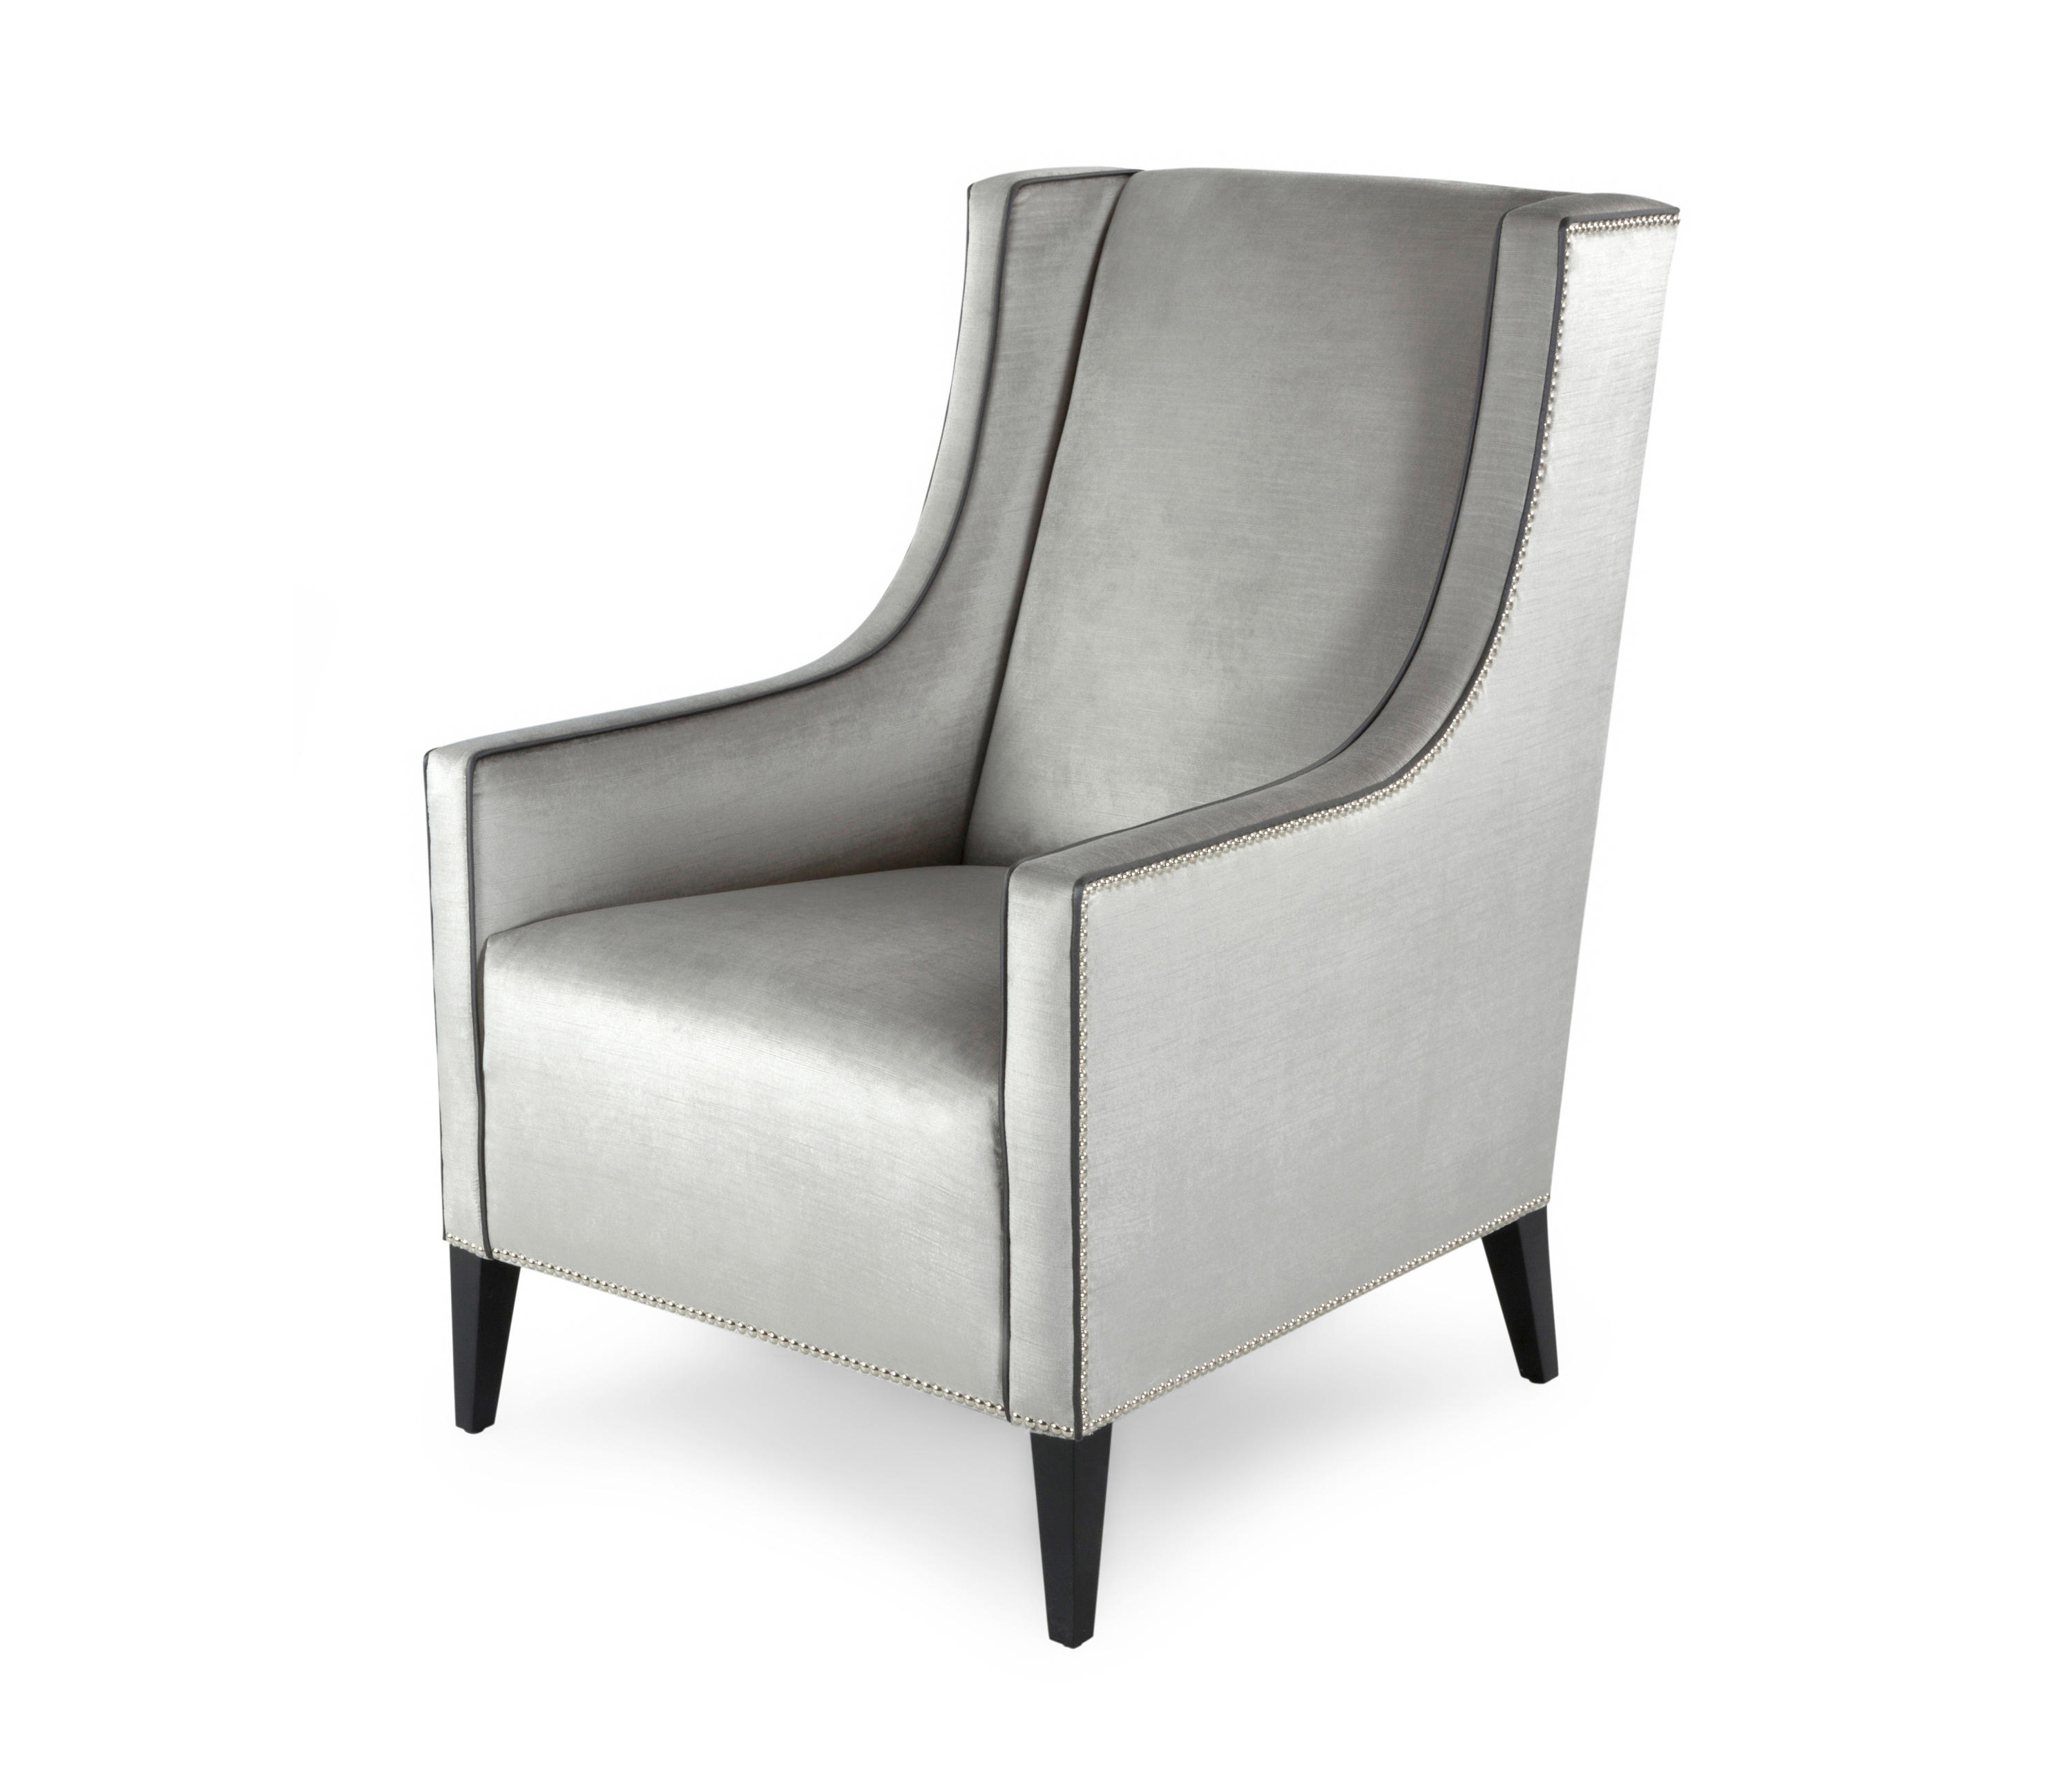 Christo small occasional chair by The Sofa & Chair Company Ltd | Armchairs